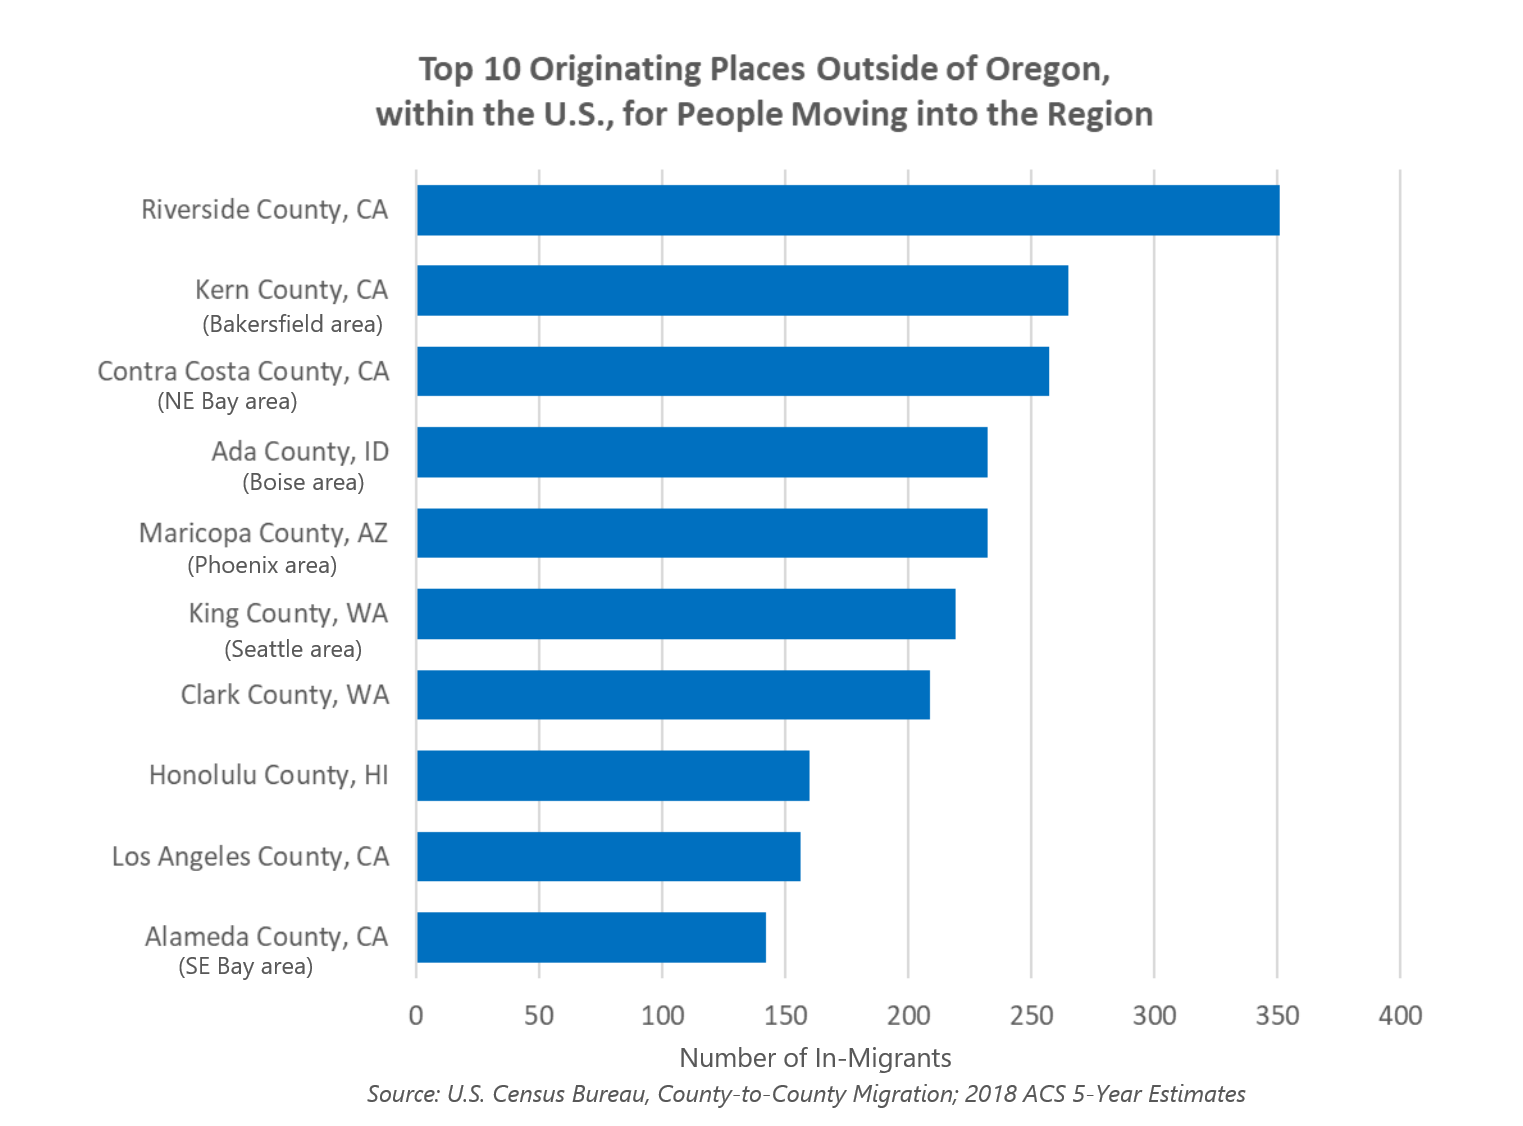 Top 10 Originating Places Outside Oregon for People Moving into the Region